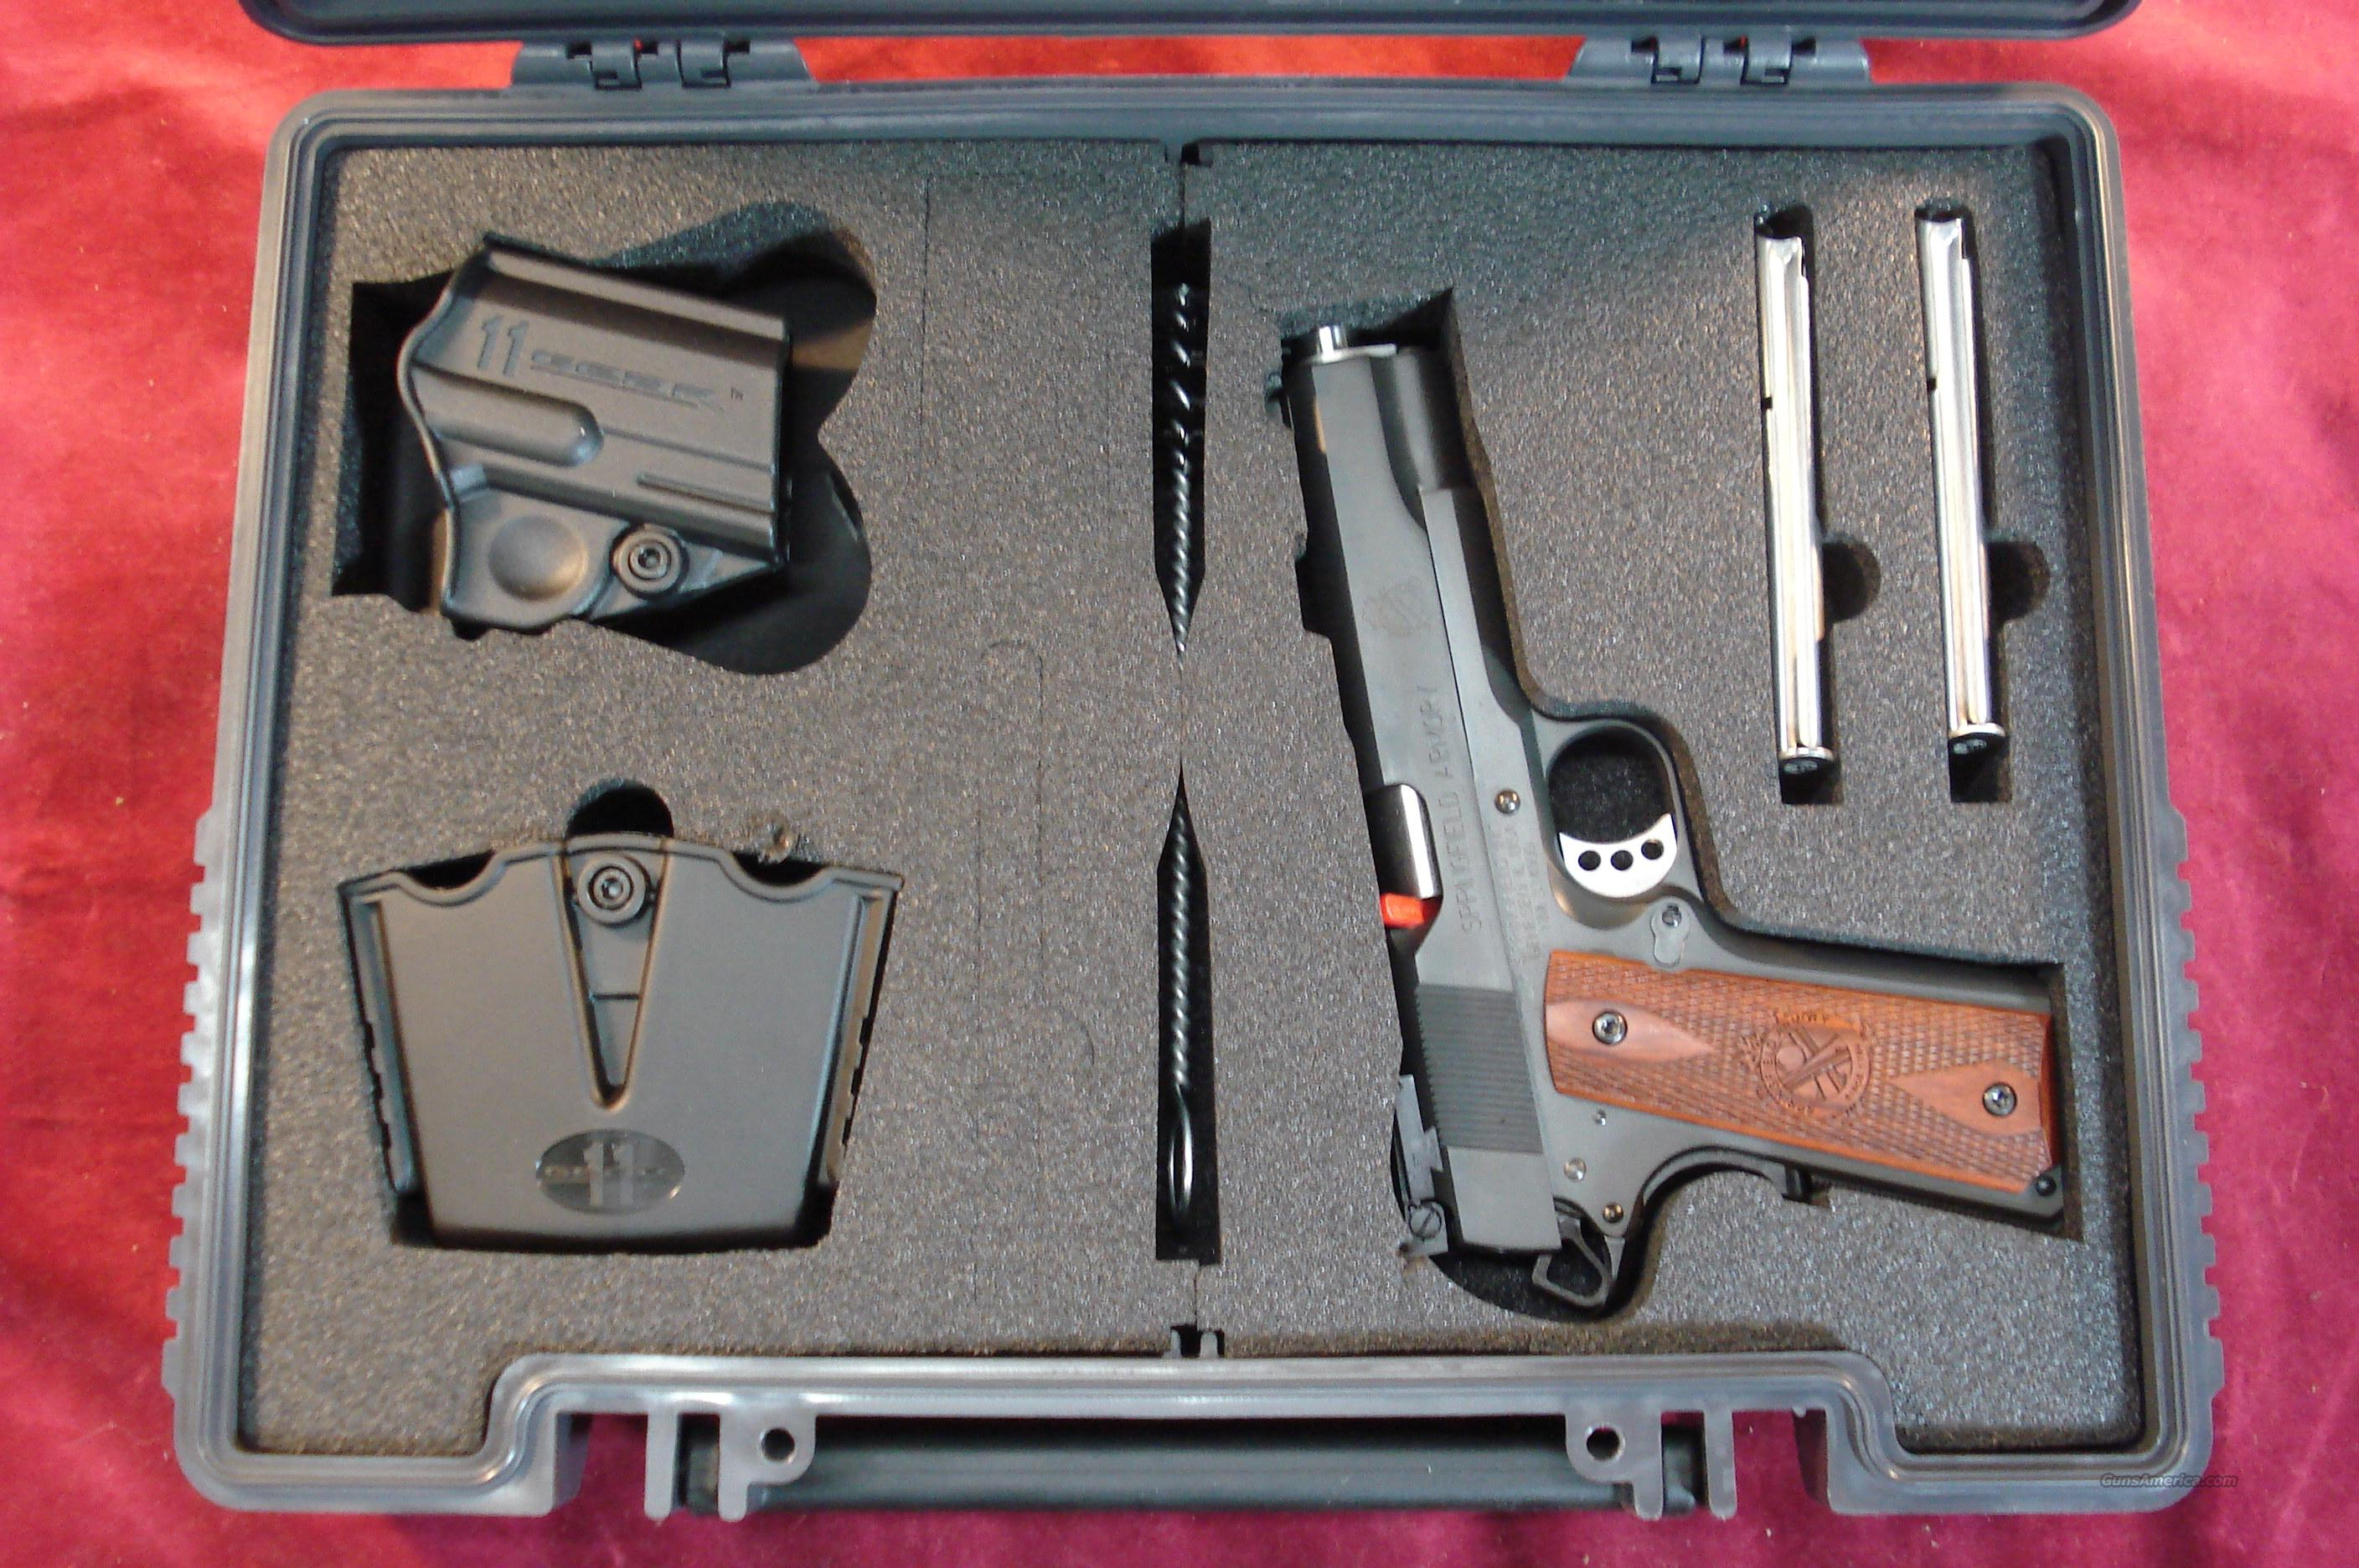 SPRINGFIELD ARMORY 1911 PARKERIZED RANGE OFFICER 9MM NEW  Guns > Pistols > Springfield Armory Pistols > 1911 Type